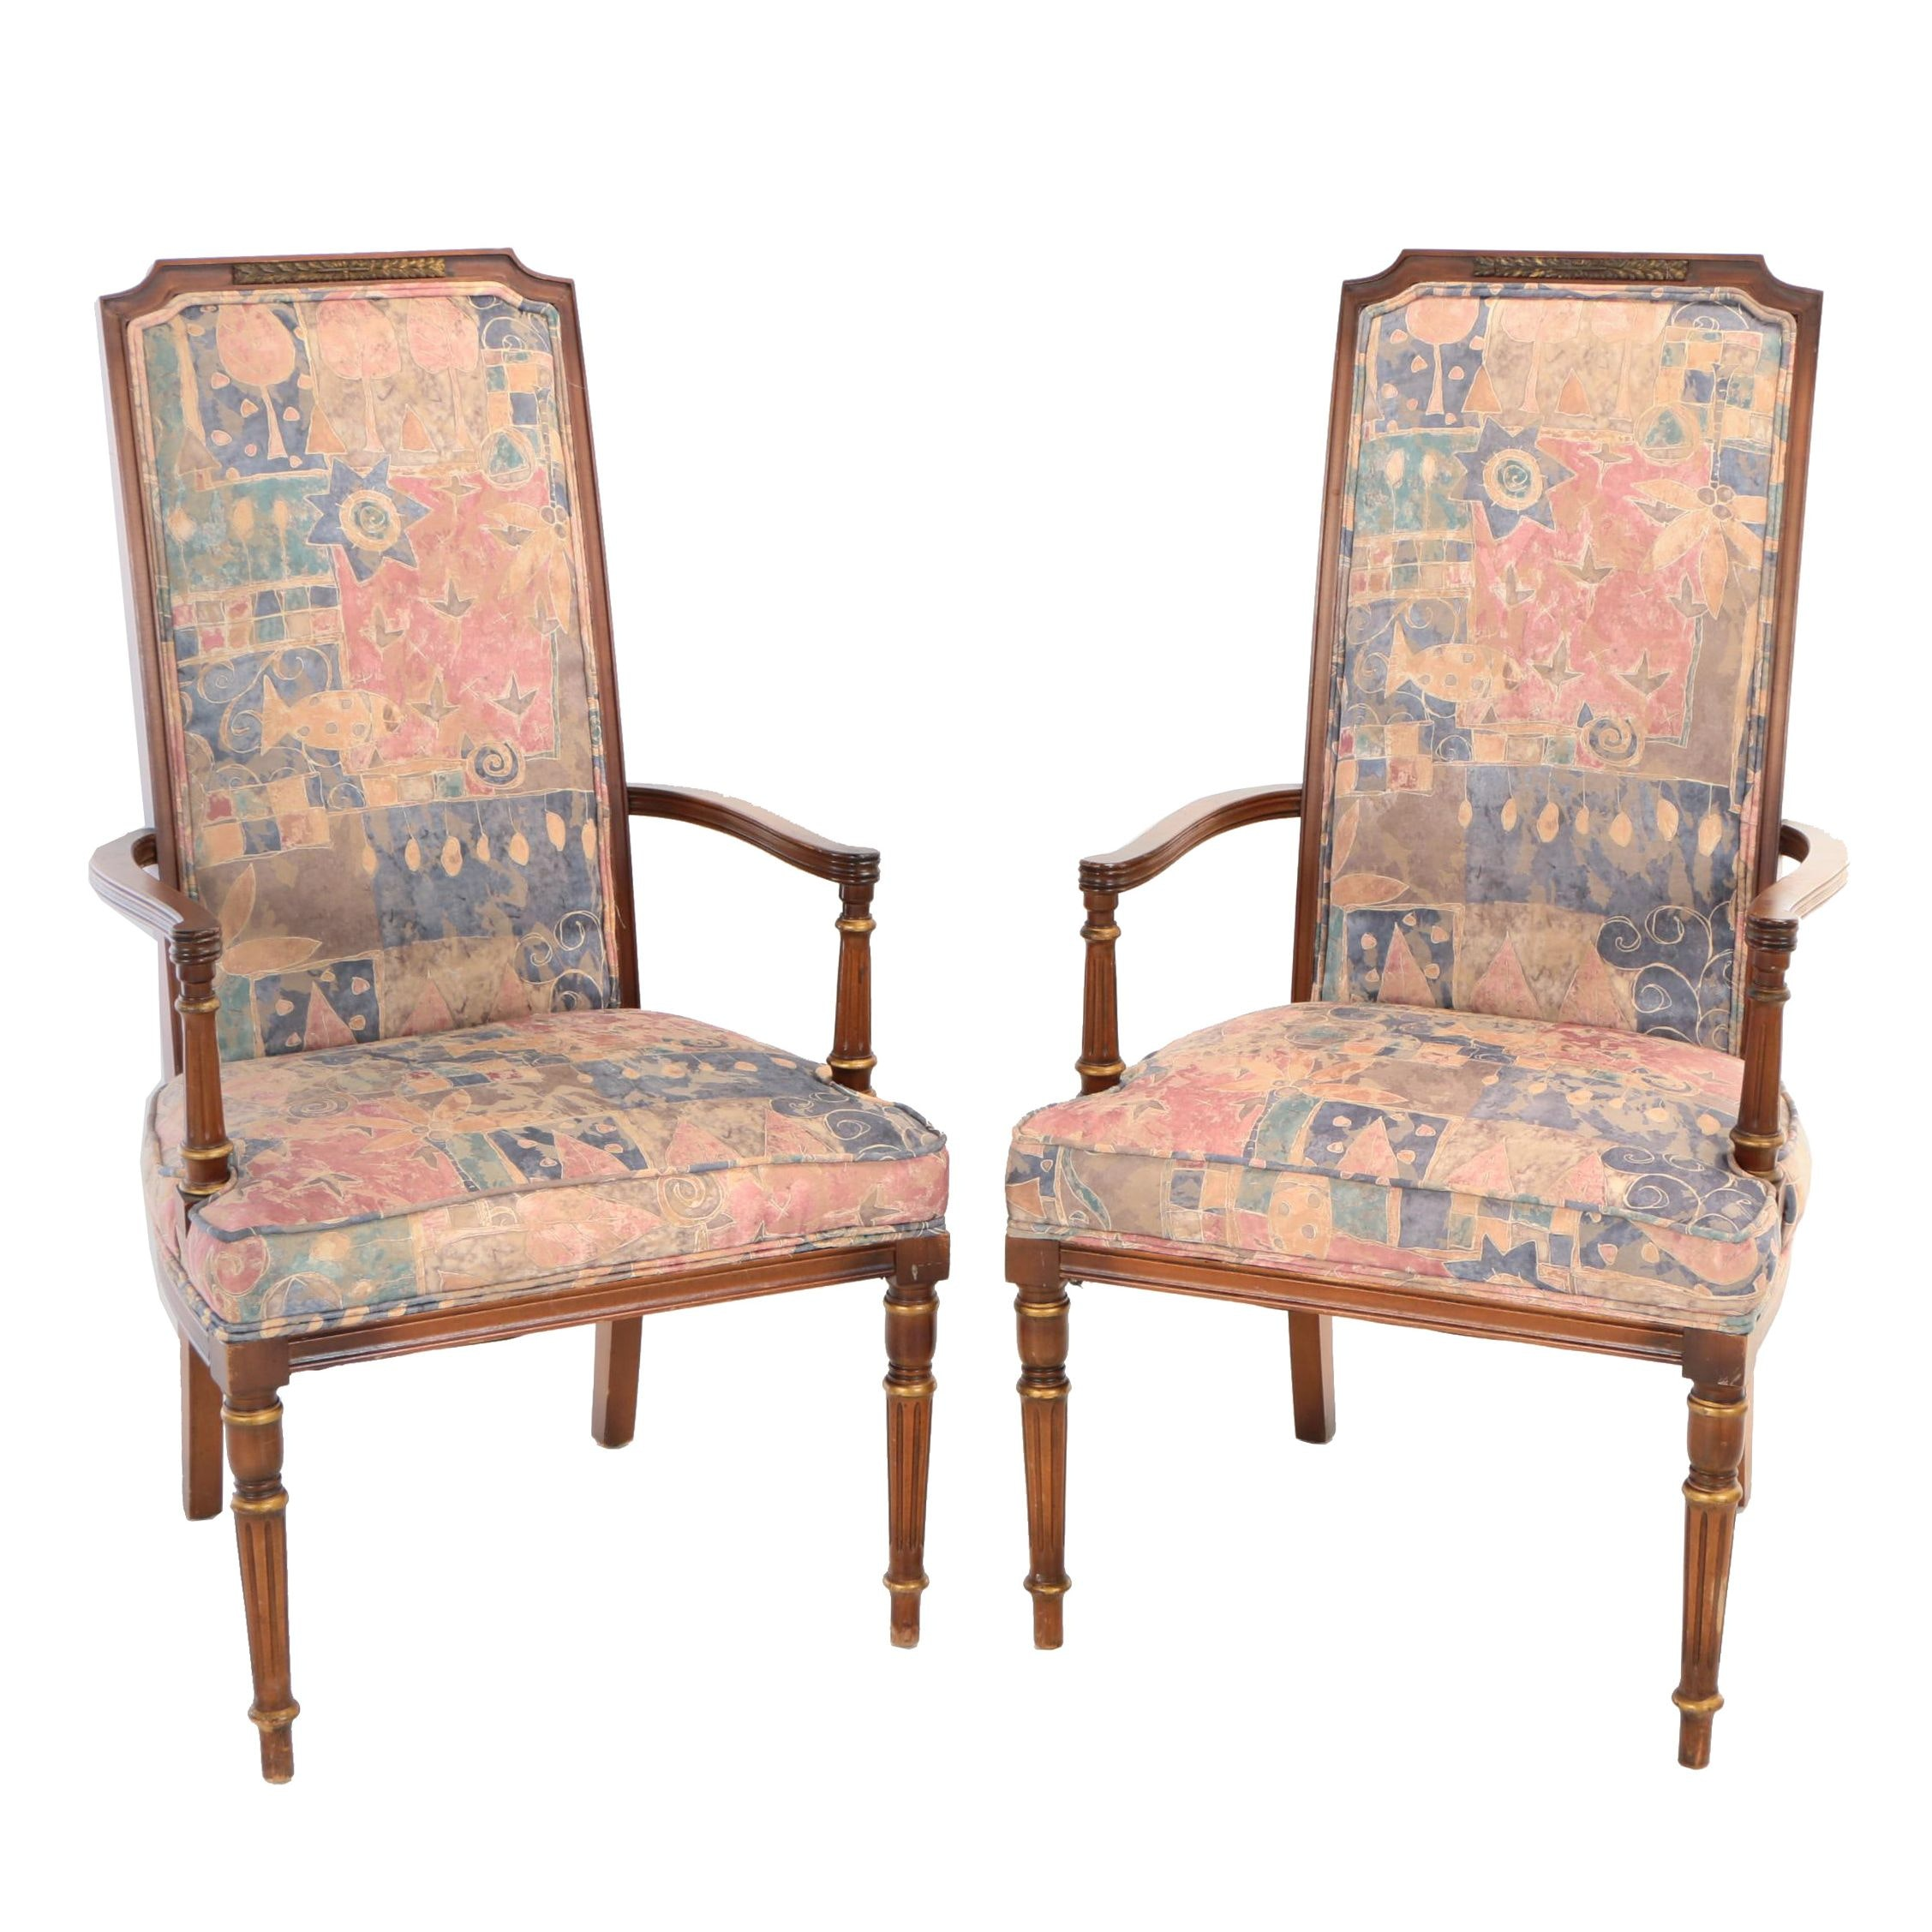 Pair of Louis XVI Style Walnut-Stained and Parcel-Gilt Open Armchairs